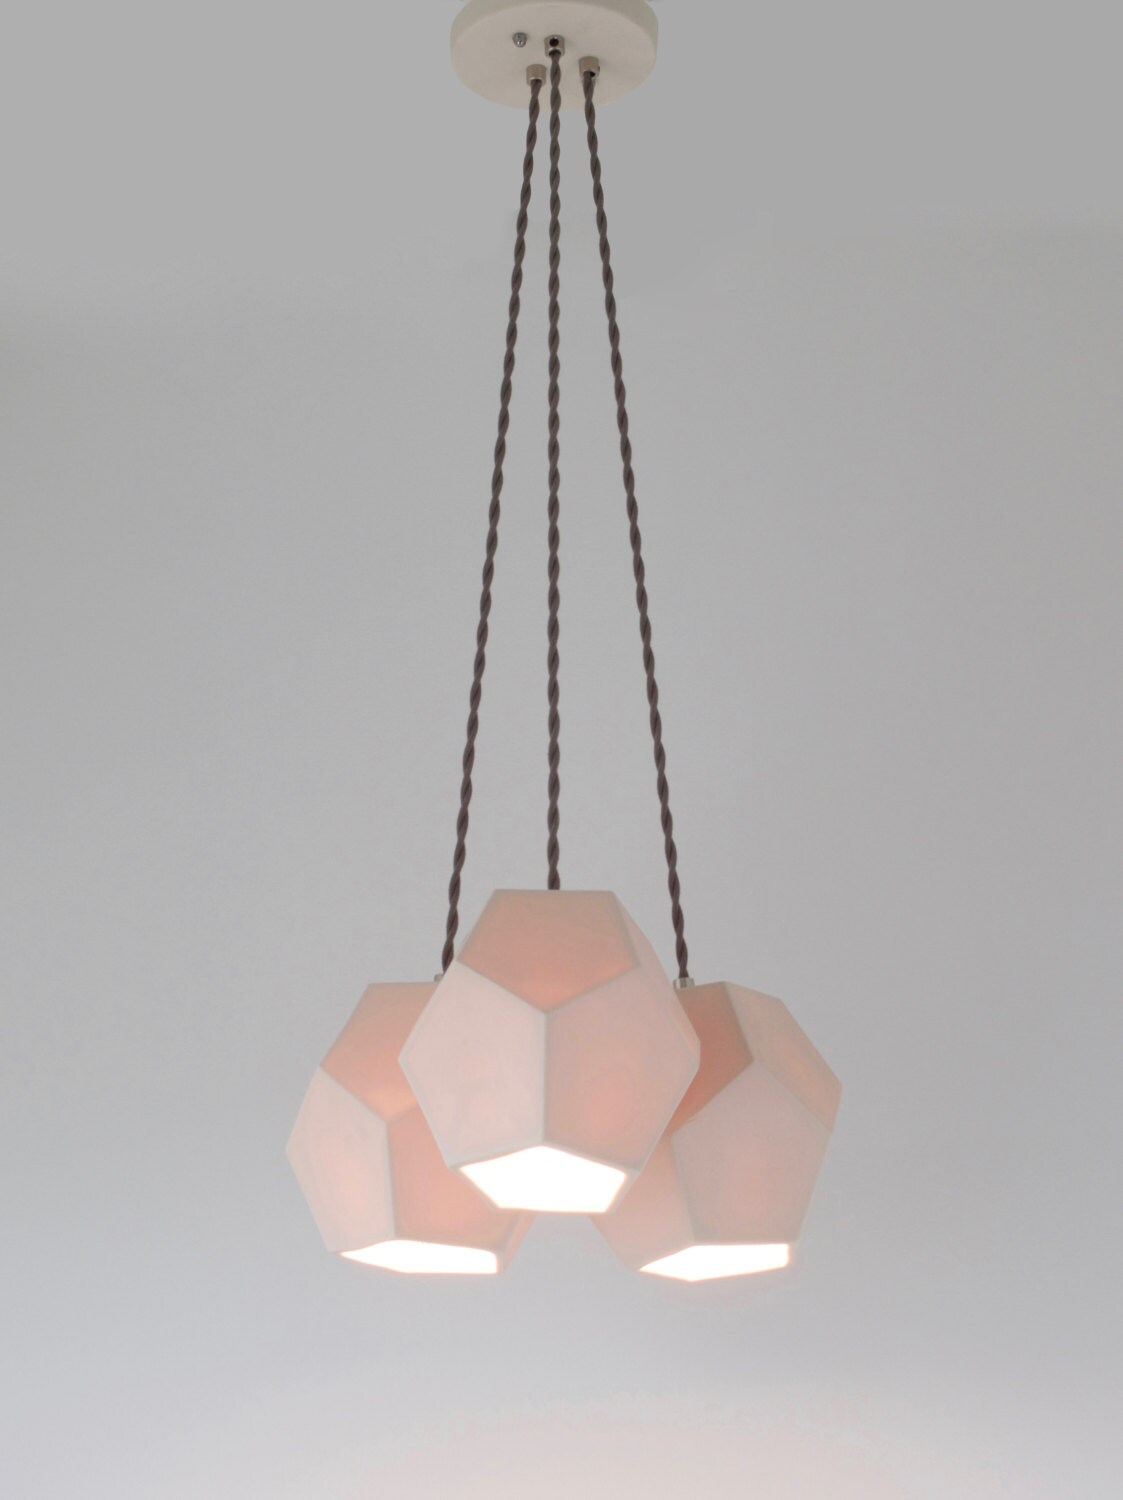 Hexagon Trio Chandelier, Translucent Porcelain Ceramic Lighting, Modern Lighting Design